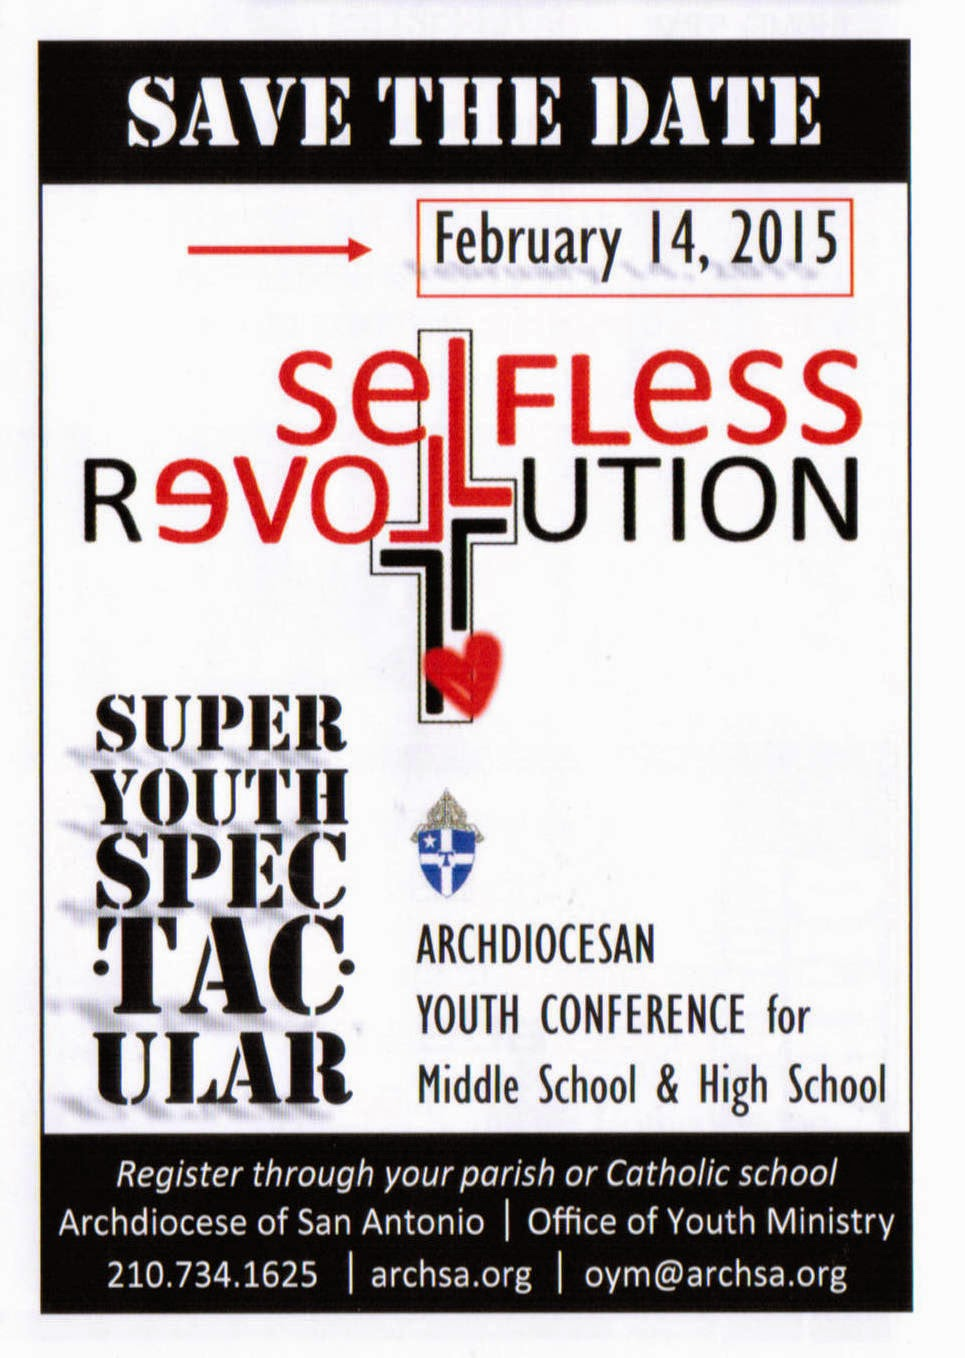 February 14, 2015: Super Youth Spectacular - Selfless Revolution